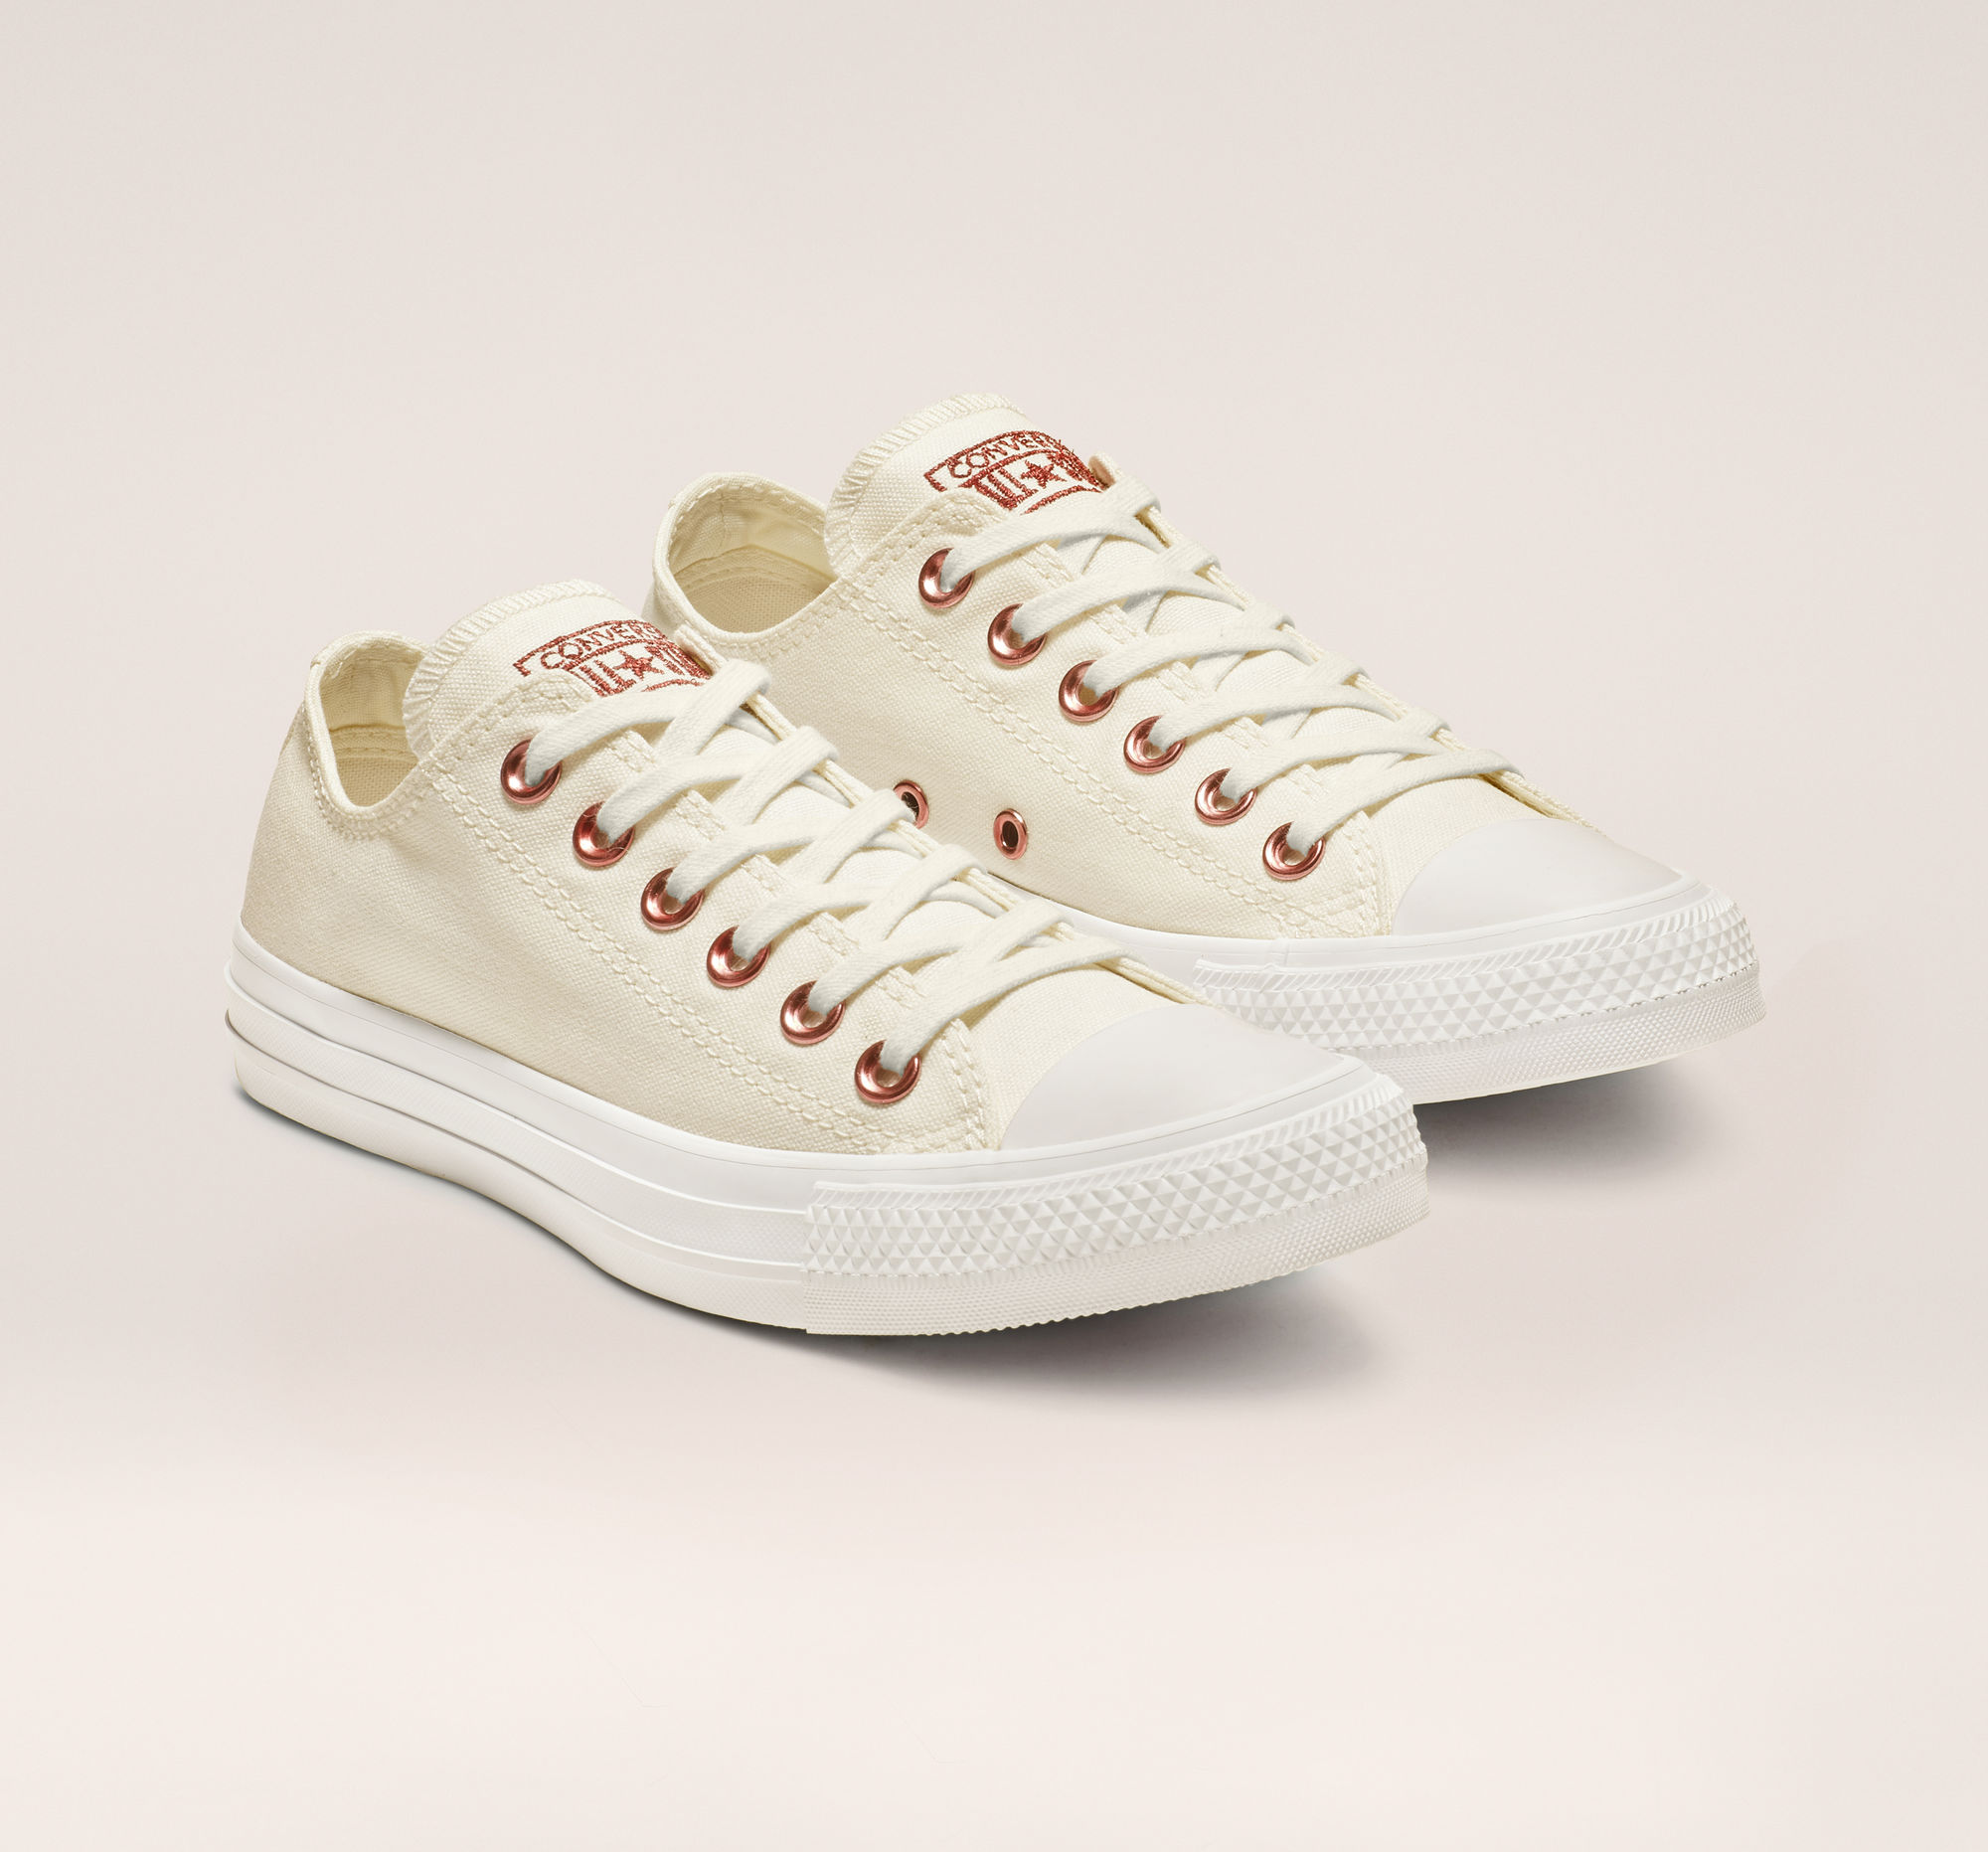 Chuck Taylor All Stars Hearts Low Top in Egret/Rhubarb/White